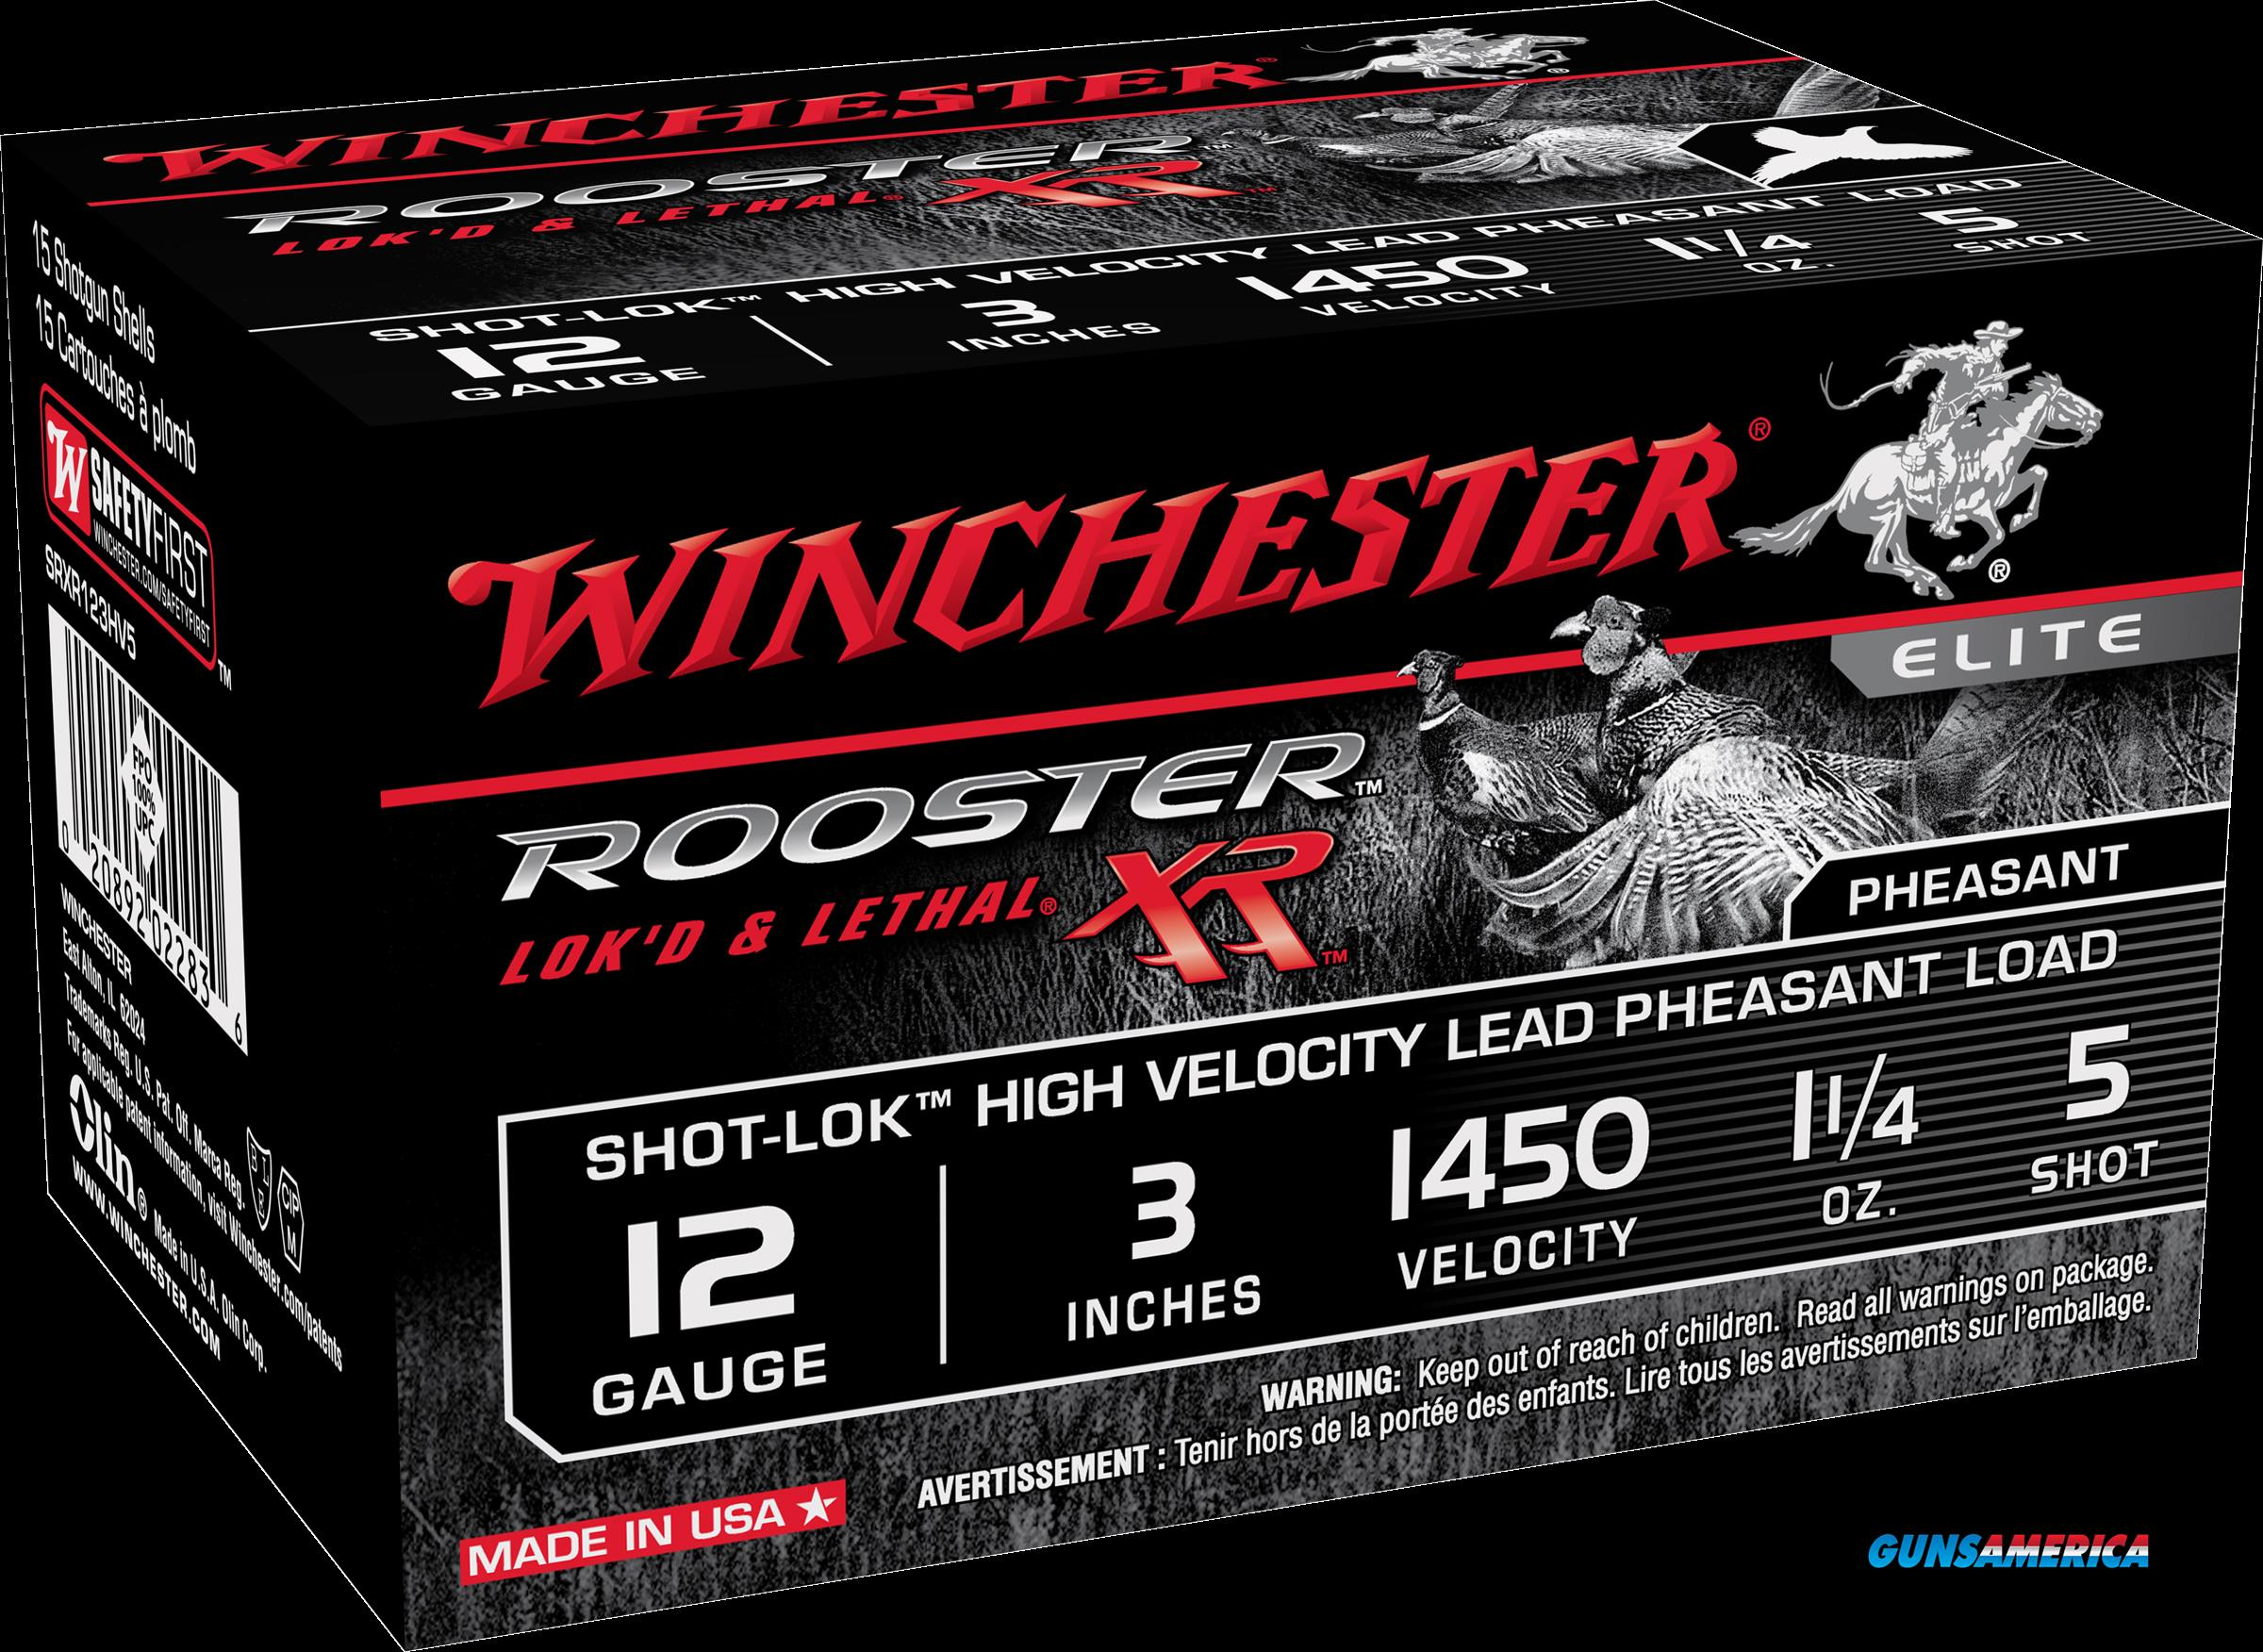 Winchester Ammo Rooster Xr, Win Srxr123hv5  Rstr Xr 12 5 3in  15-10  Guns > Pistols > 1911 Pistol Copies (non-Colt)